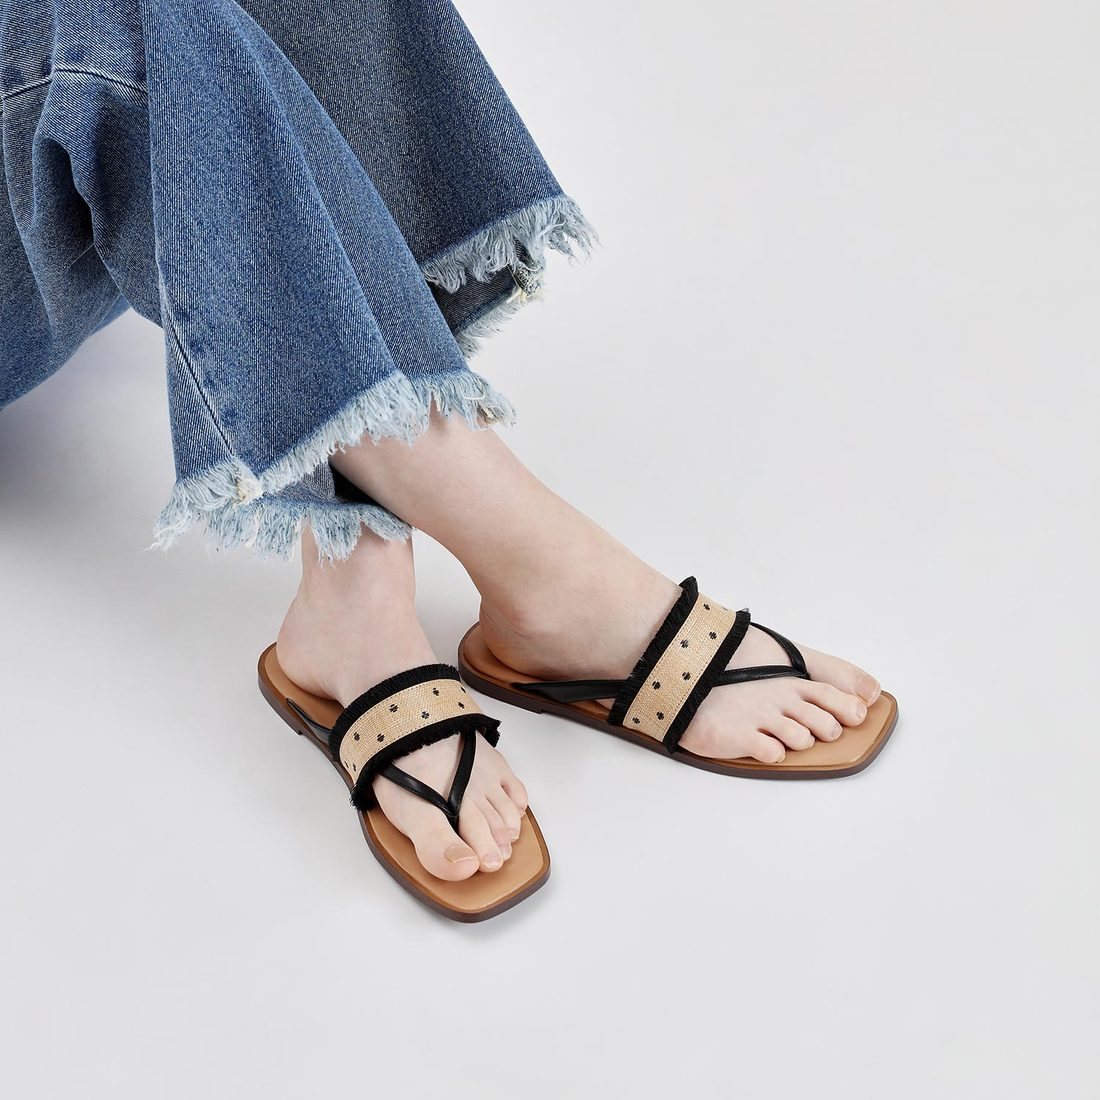 Tokyo Shoe Trends You Need This Summer